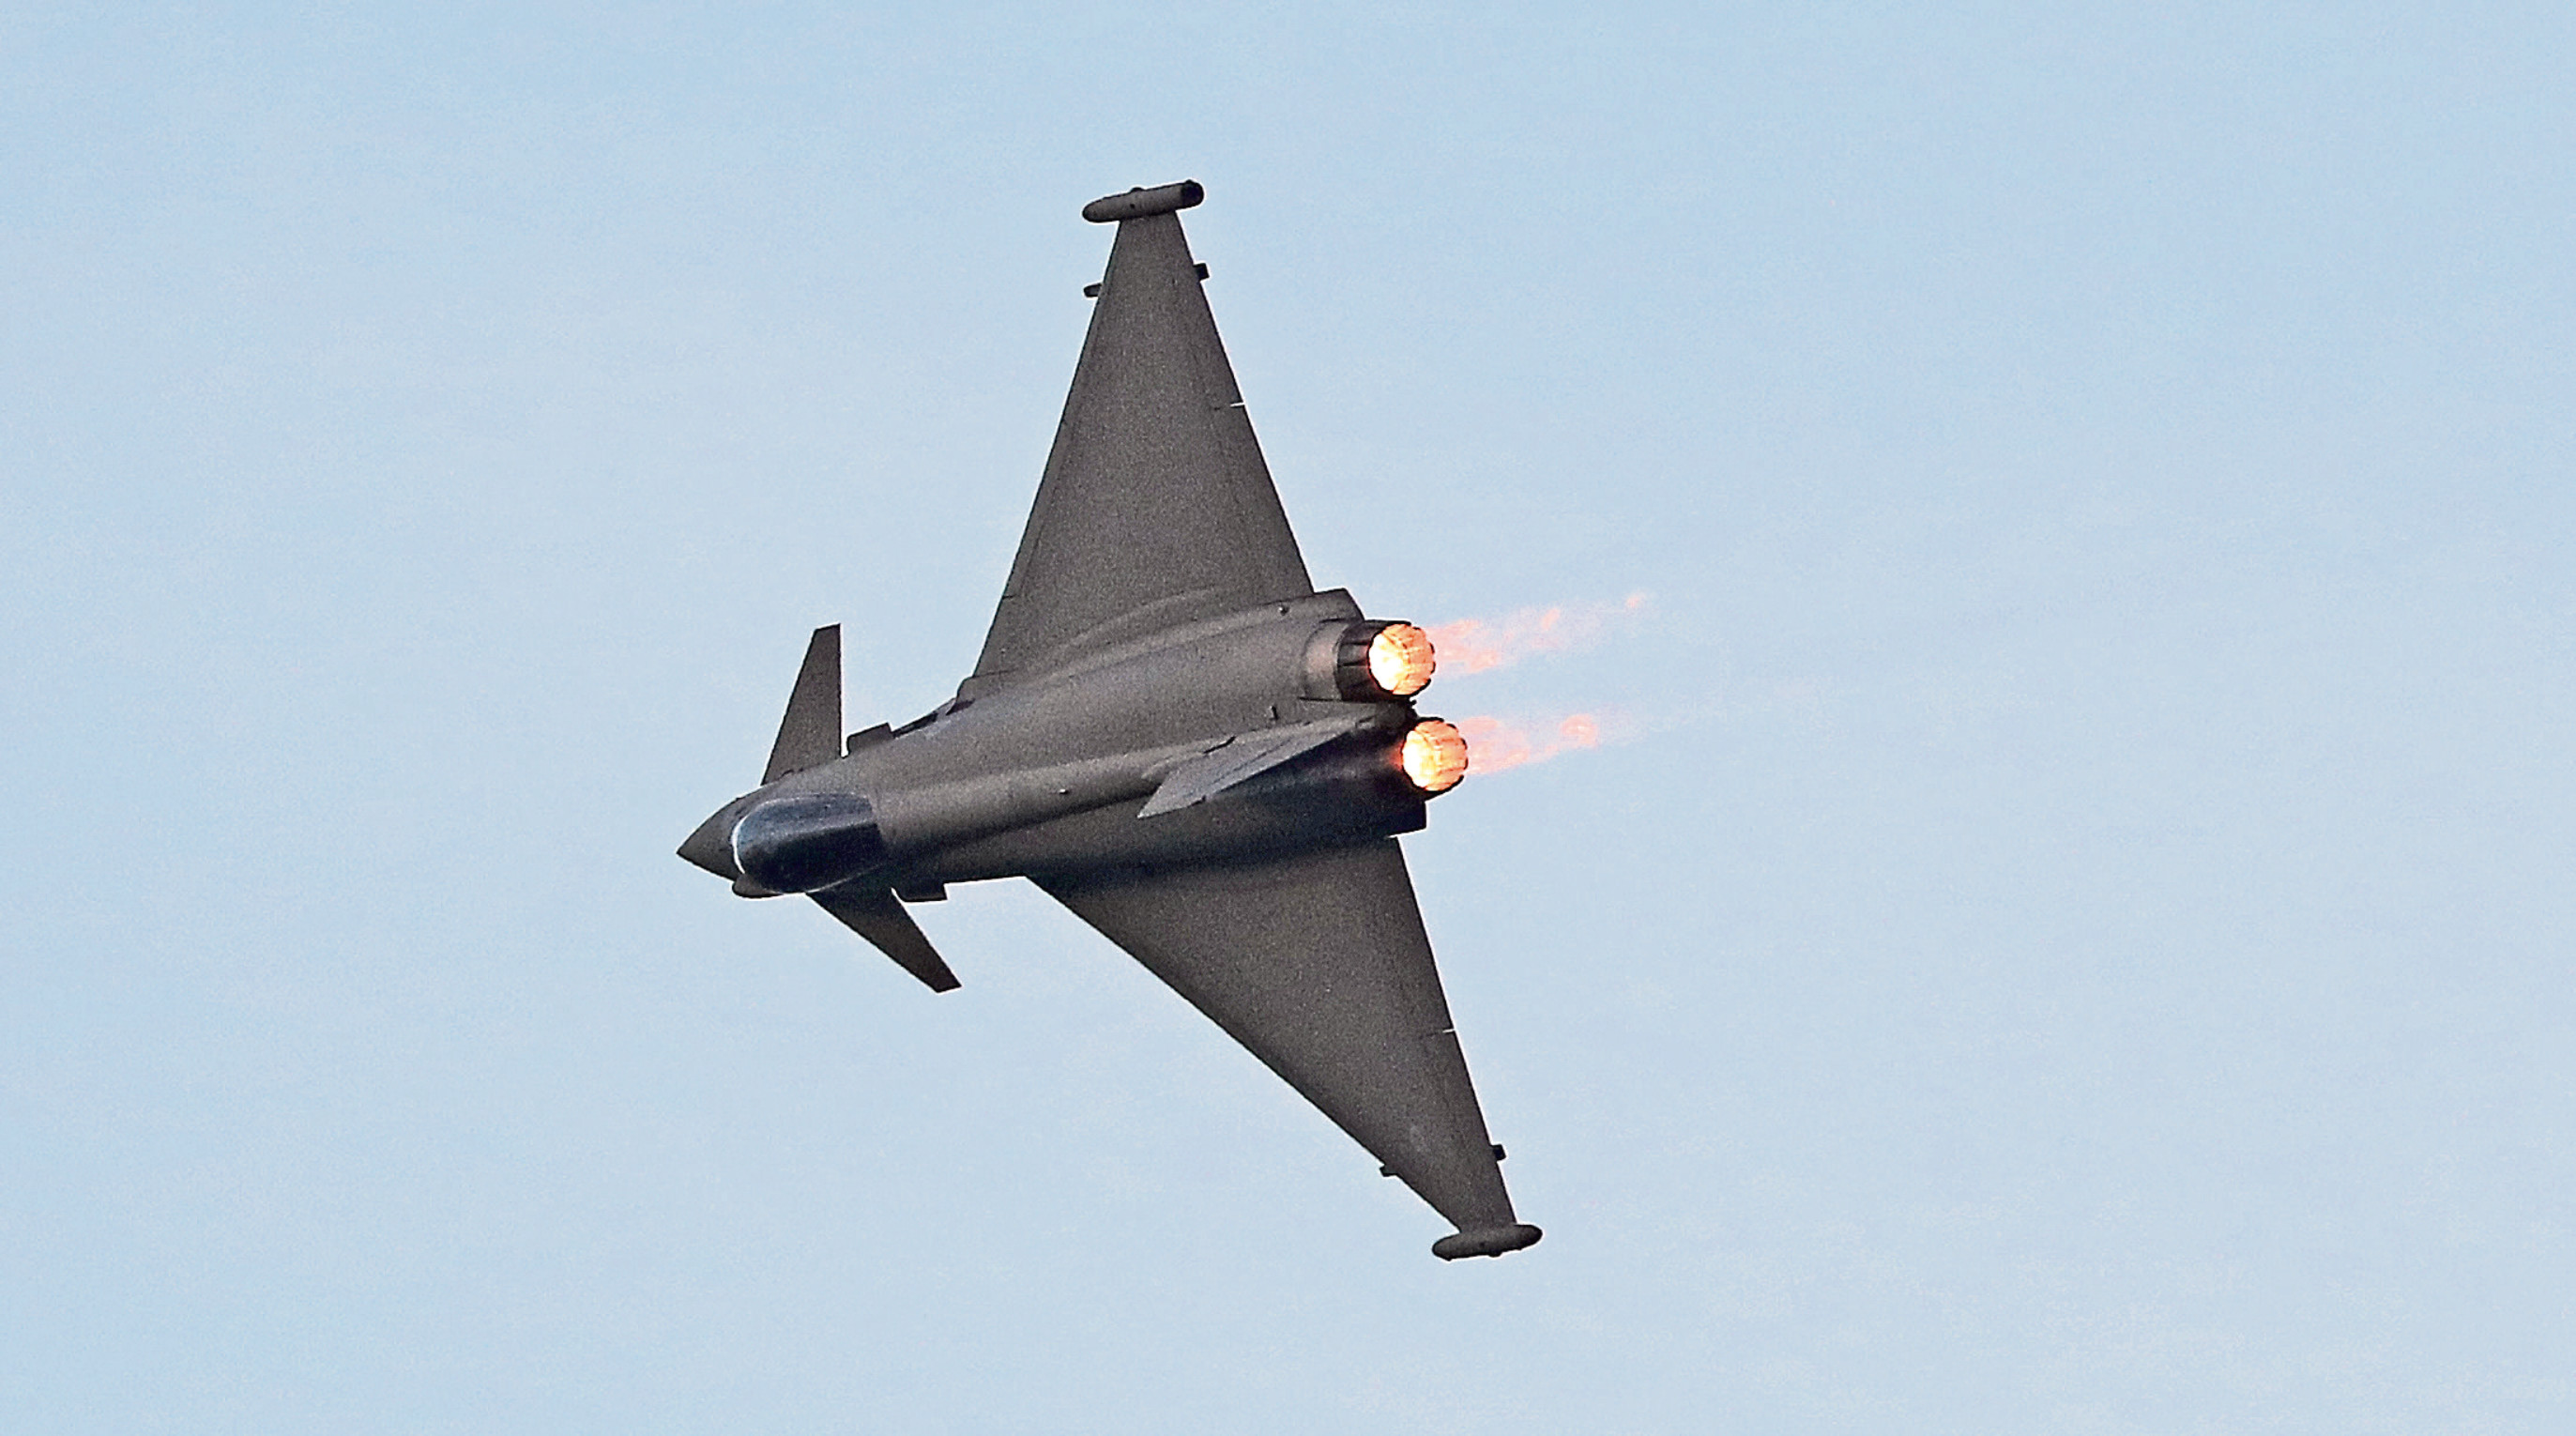 Official probe reveals RAF fighter jets were just seconds